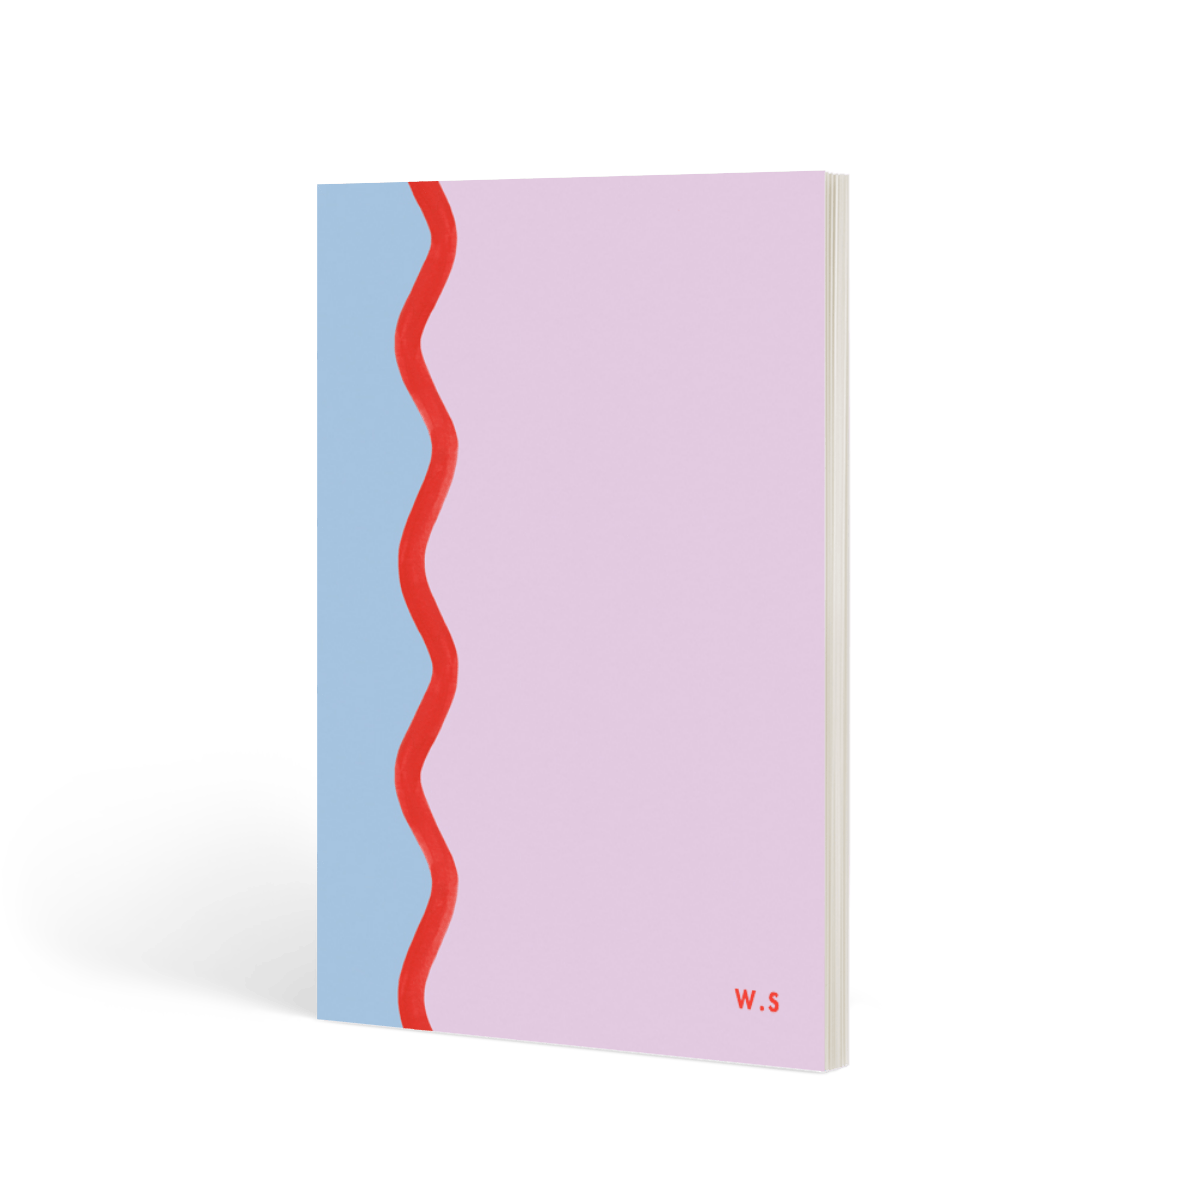 Https%3a%2f%2fwww.papier.com%2fproduct image%2f76165%2f6%2fscallop spine 17903 front 1585308325.png?ixlib=rb 1.1